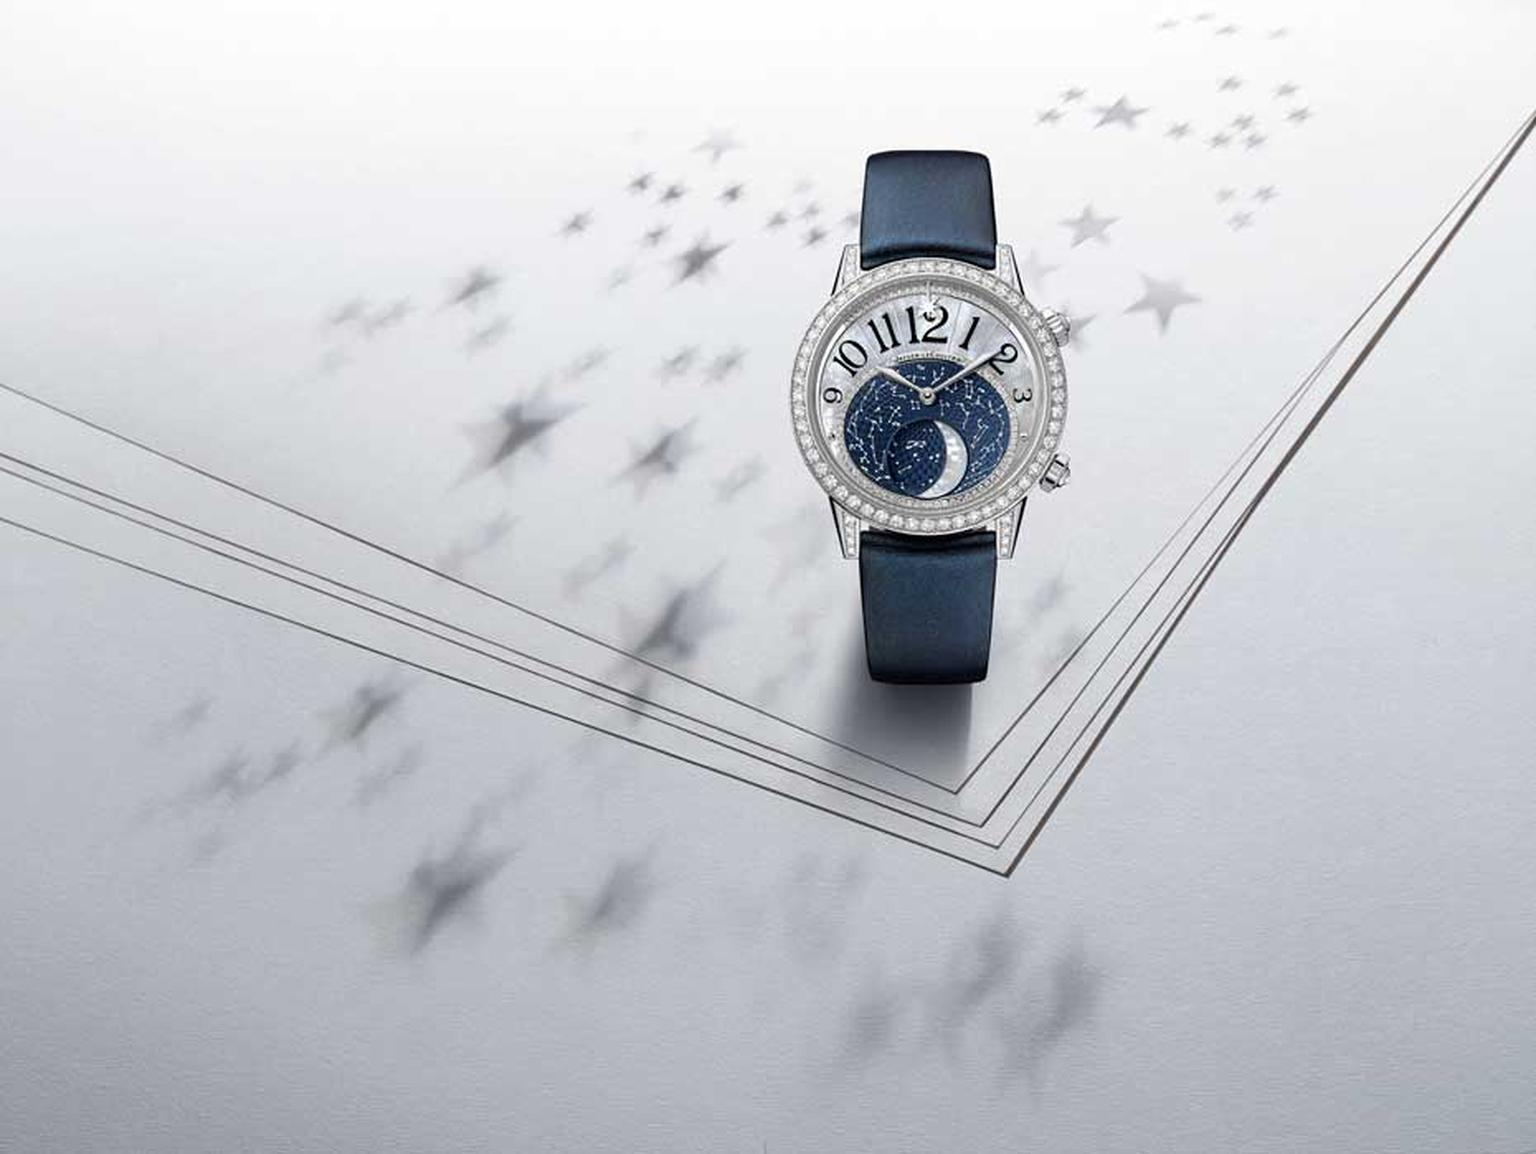 Jaeger-LeCoultre Rendez-Vous Moon is presented in a white gold case in either a 36mm or 39mm diameter. The 36mm case is lit up with 166 brilliant-cut diamonds on the bezel, the 39mm version features 208 brilliant-cut diamonds and comes on a navy blue sati